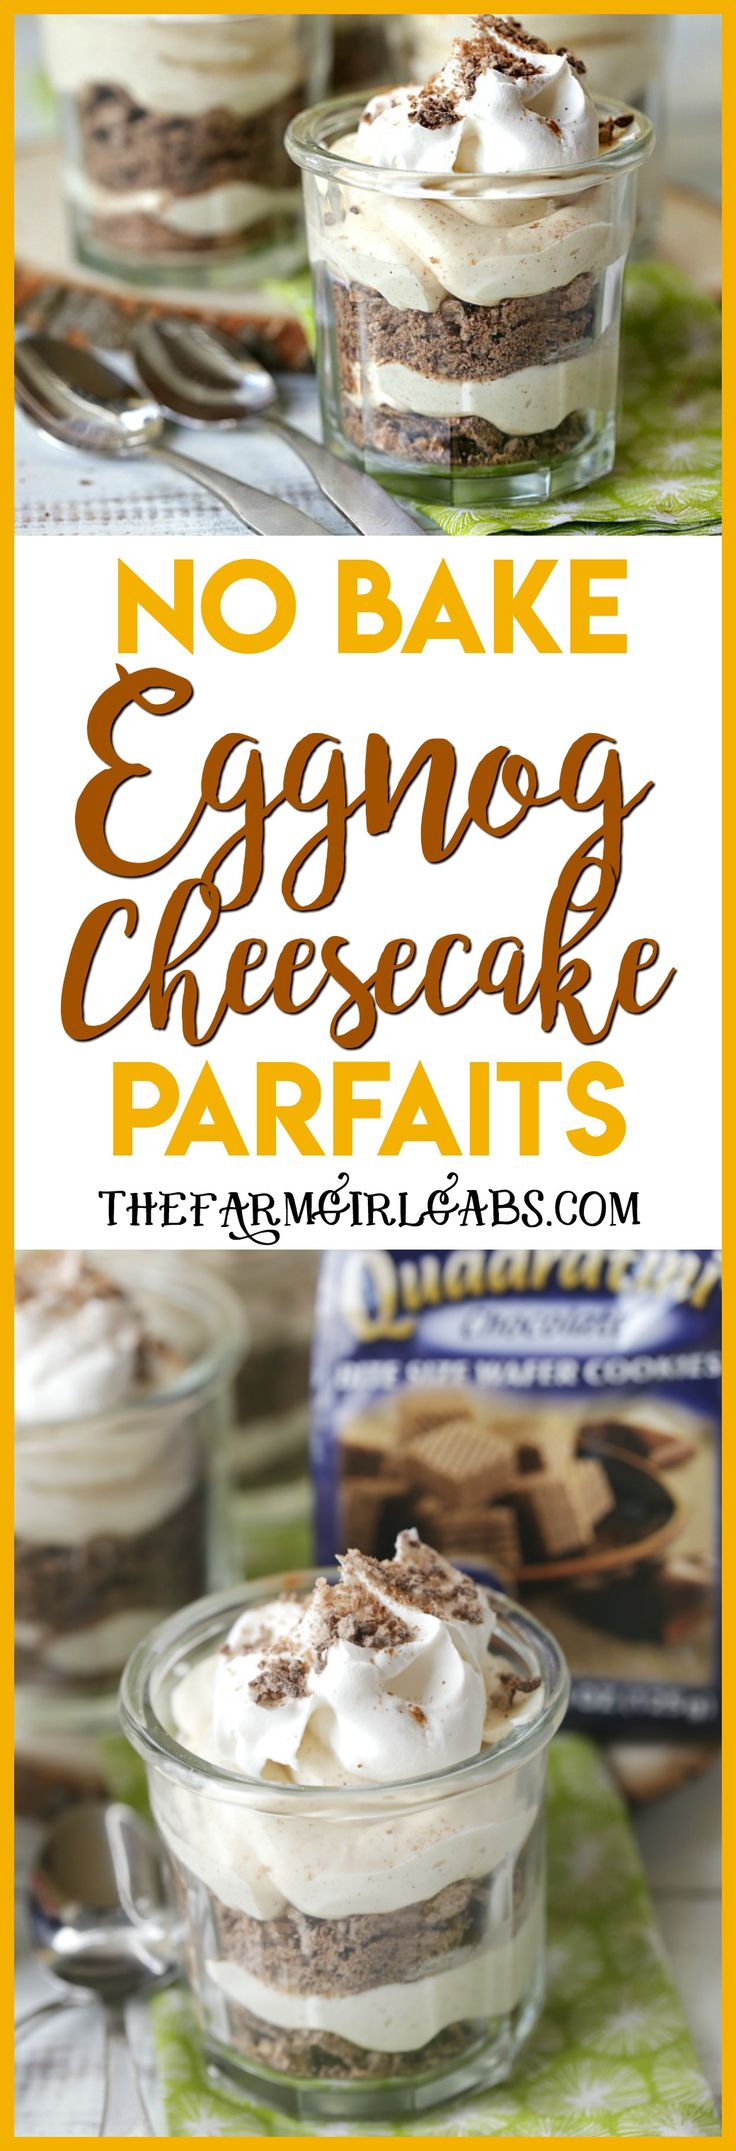 Tempt your holiday tastebuds with the easy recipe for Eggnog Cheesecake Parfaits. Whip a few up for your holiday celebration. #Ad #loackerlove #dessert #christmasrecipes #nobakedessert